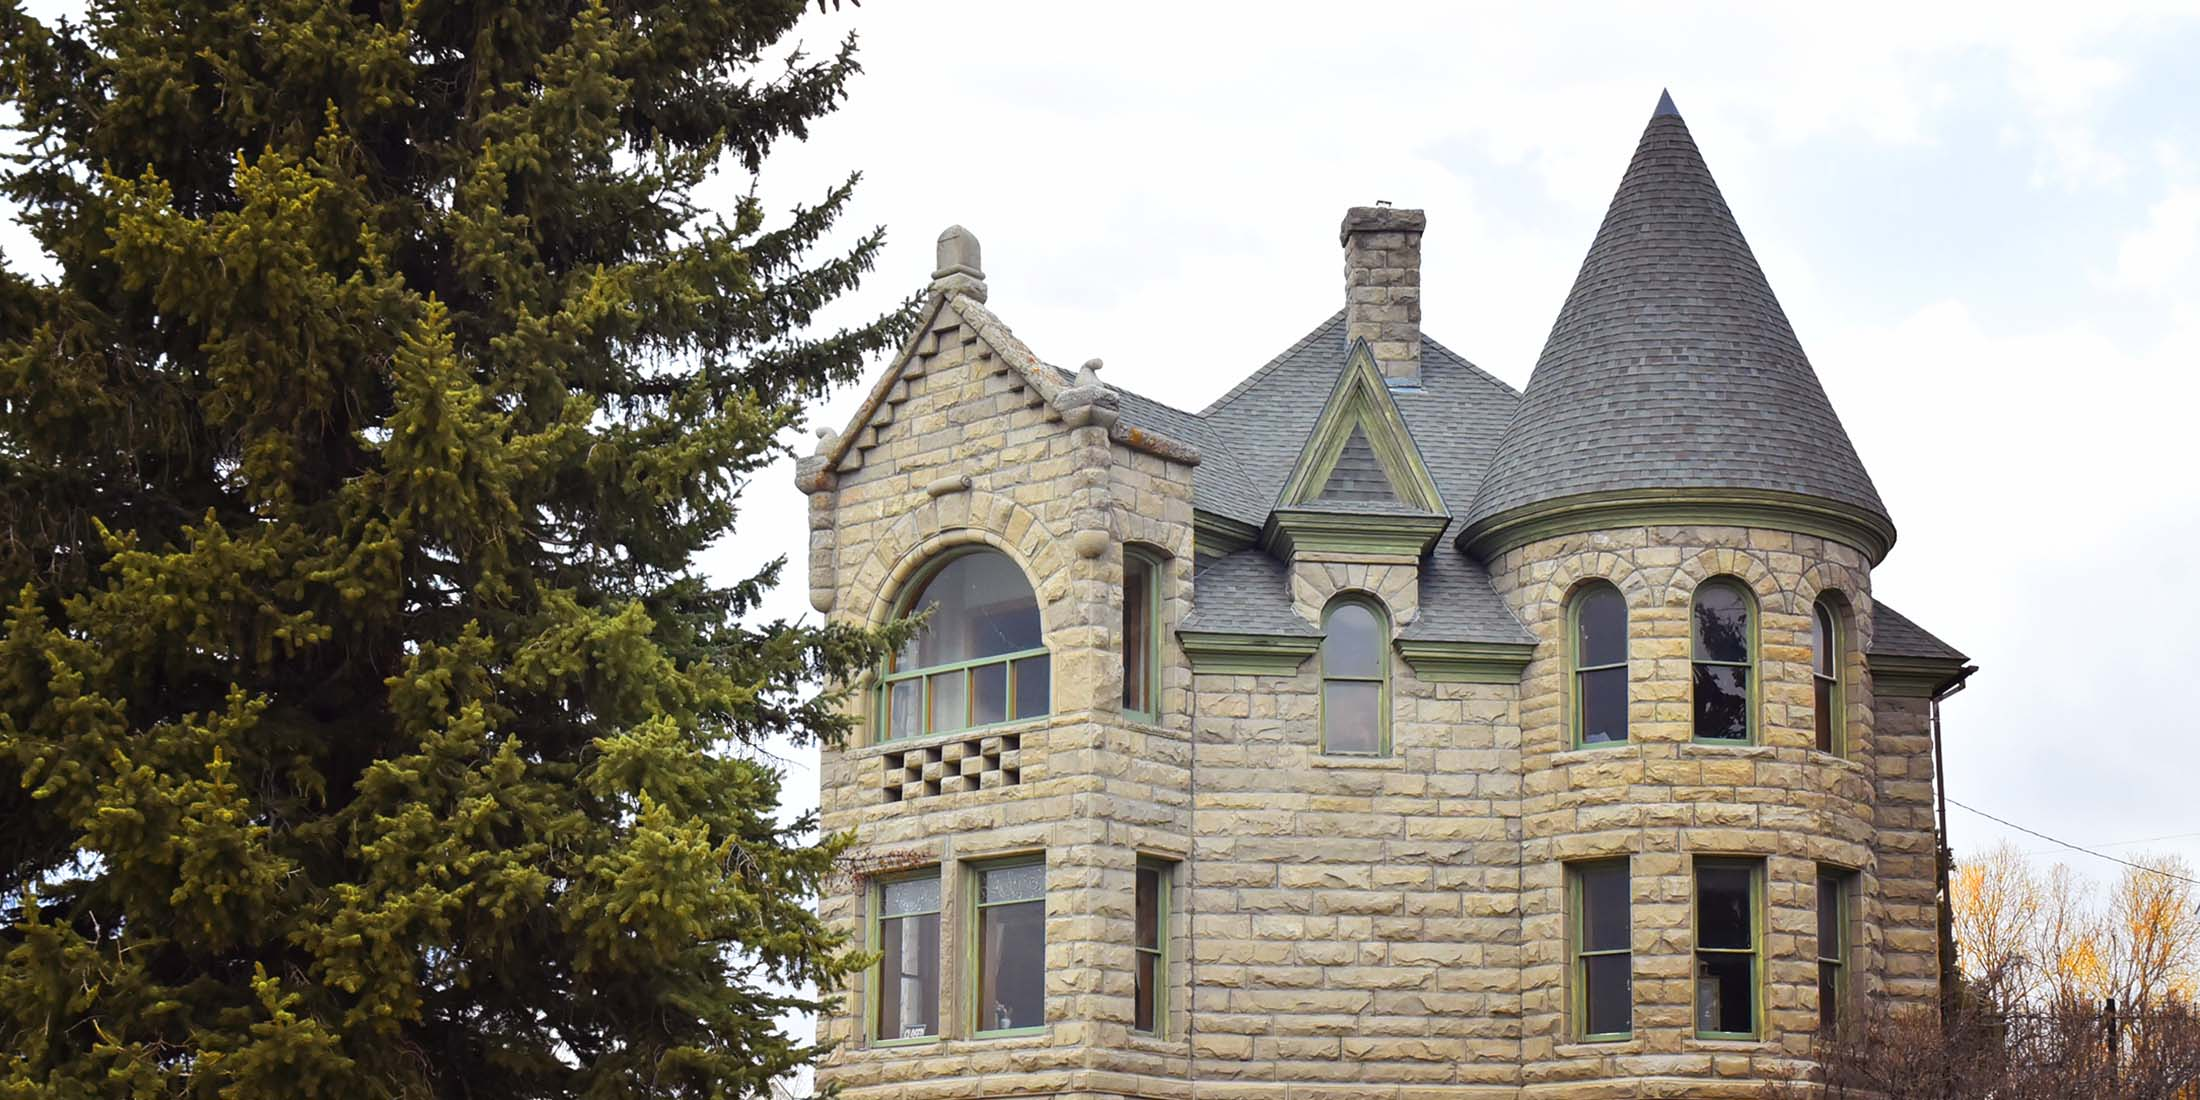 Information about the Castle Museum located in White Sulphur Springs, Montana.